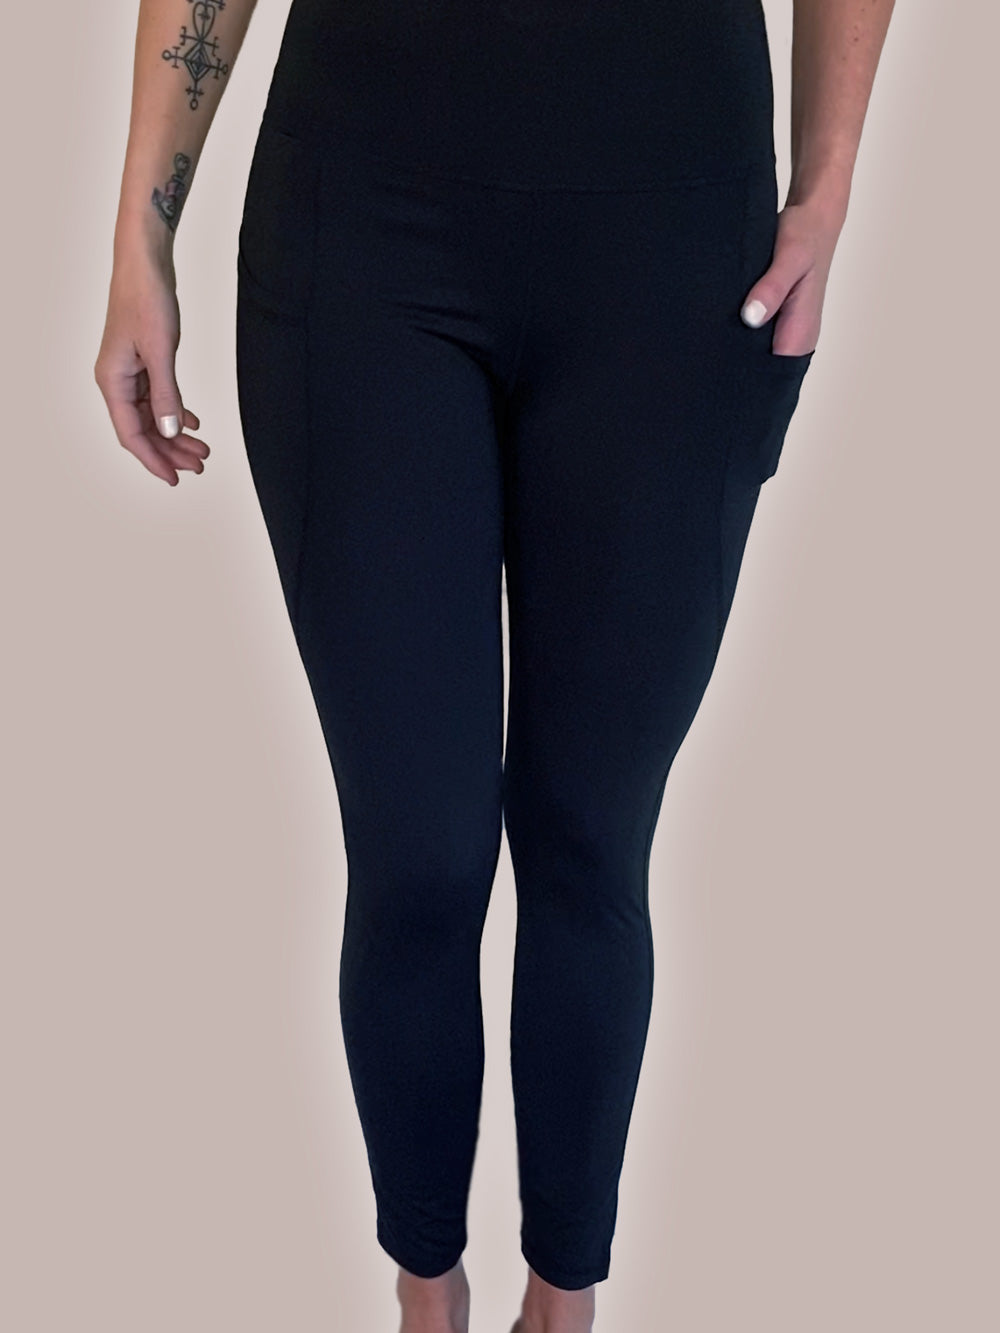 The Bella Light - Our All Around Go-To Legging In a Lighter Weight Fabric